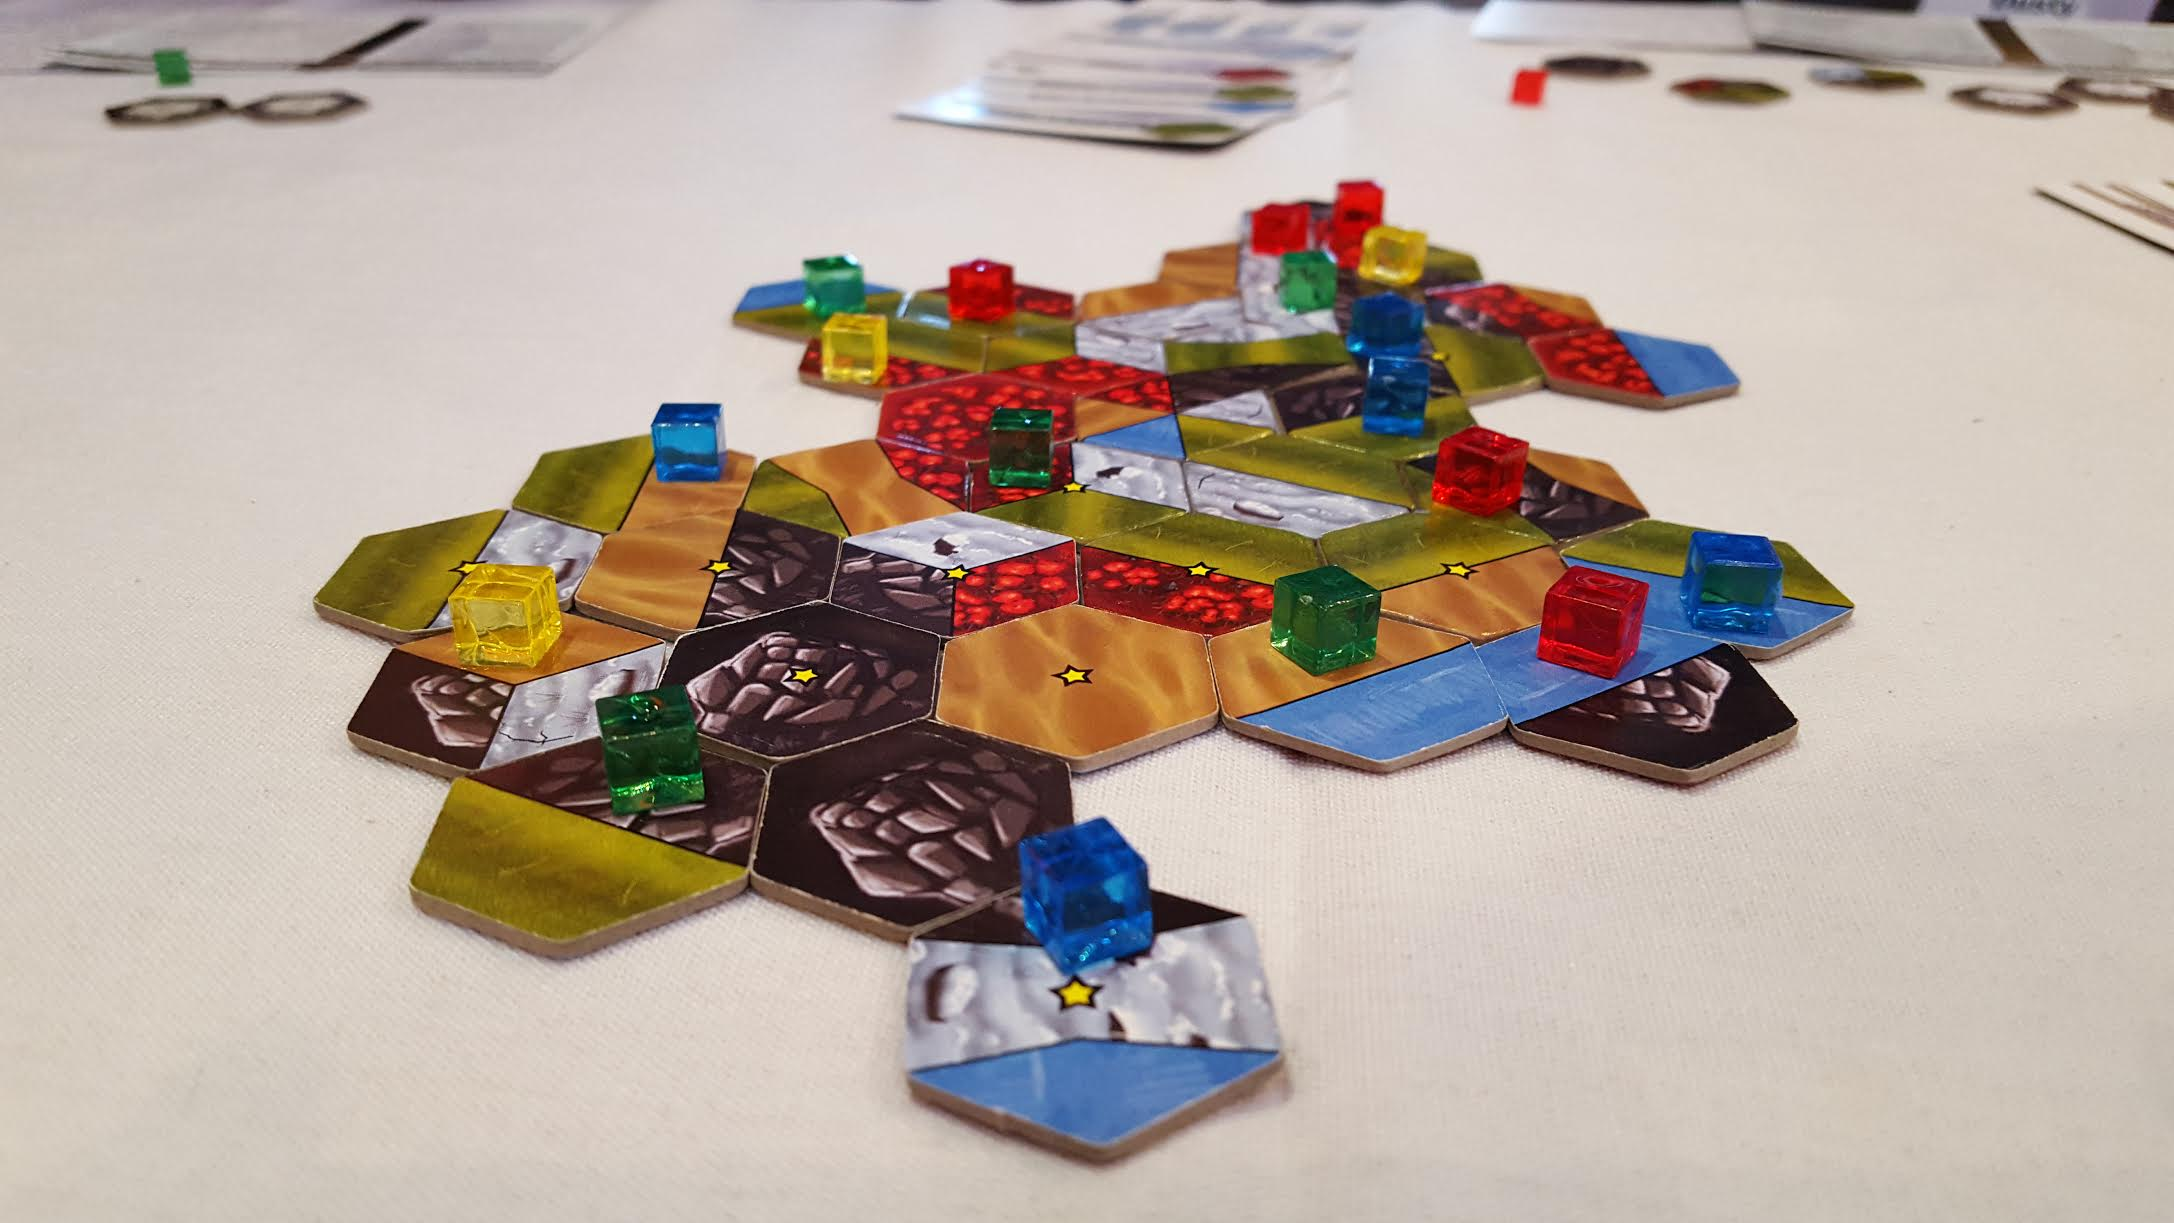 Landed: A Competitive, Terraforming, Tile-Laying Game is now Live